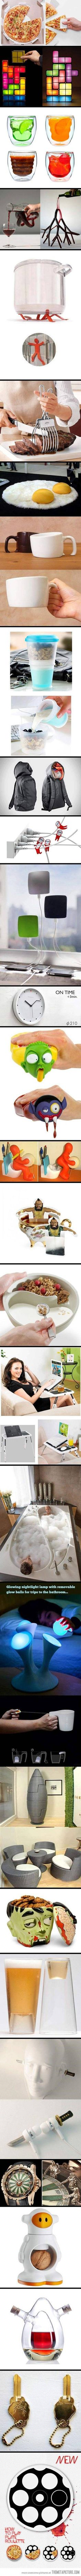 interesting inventions, I want some of them!